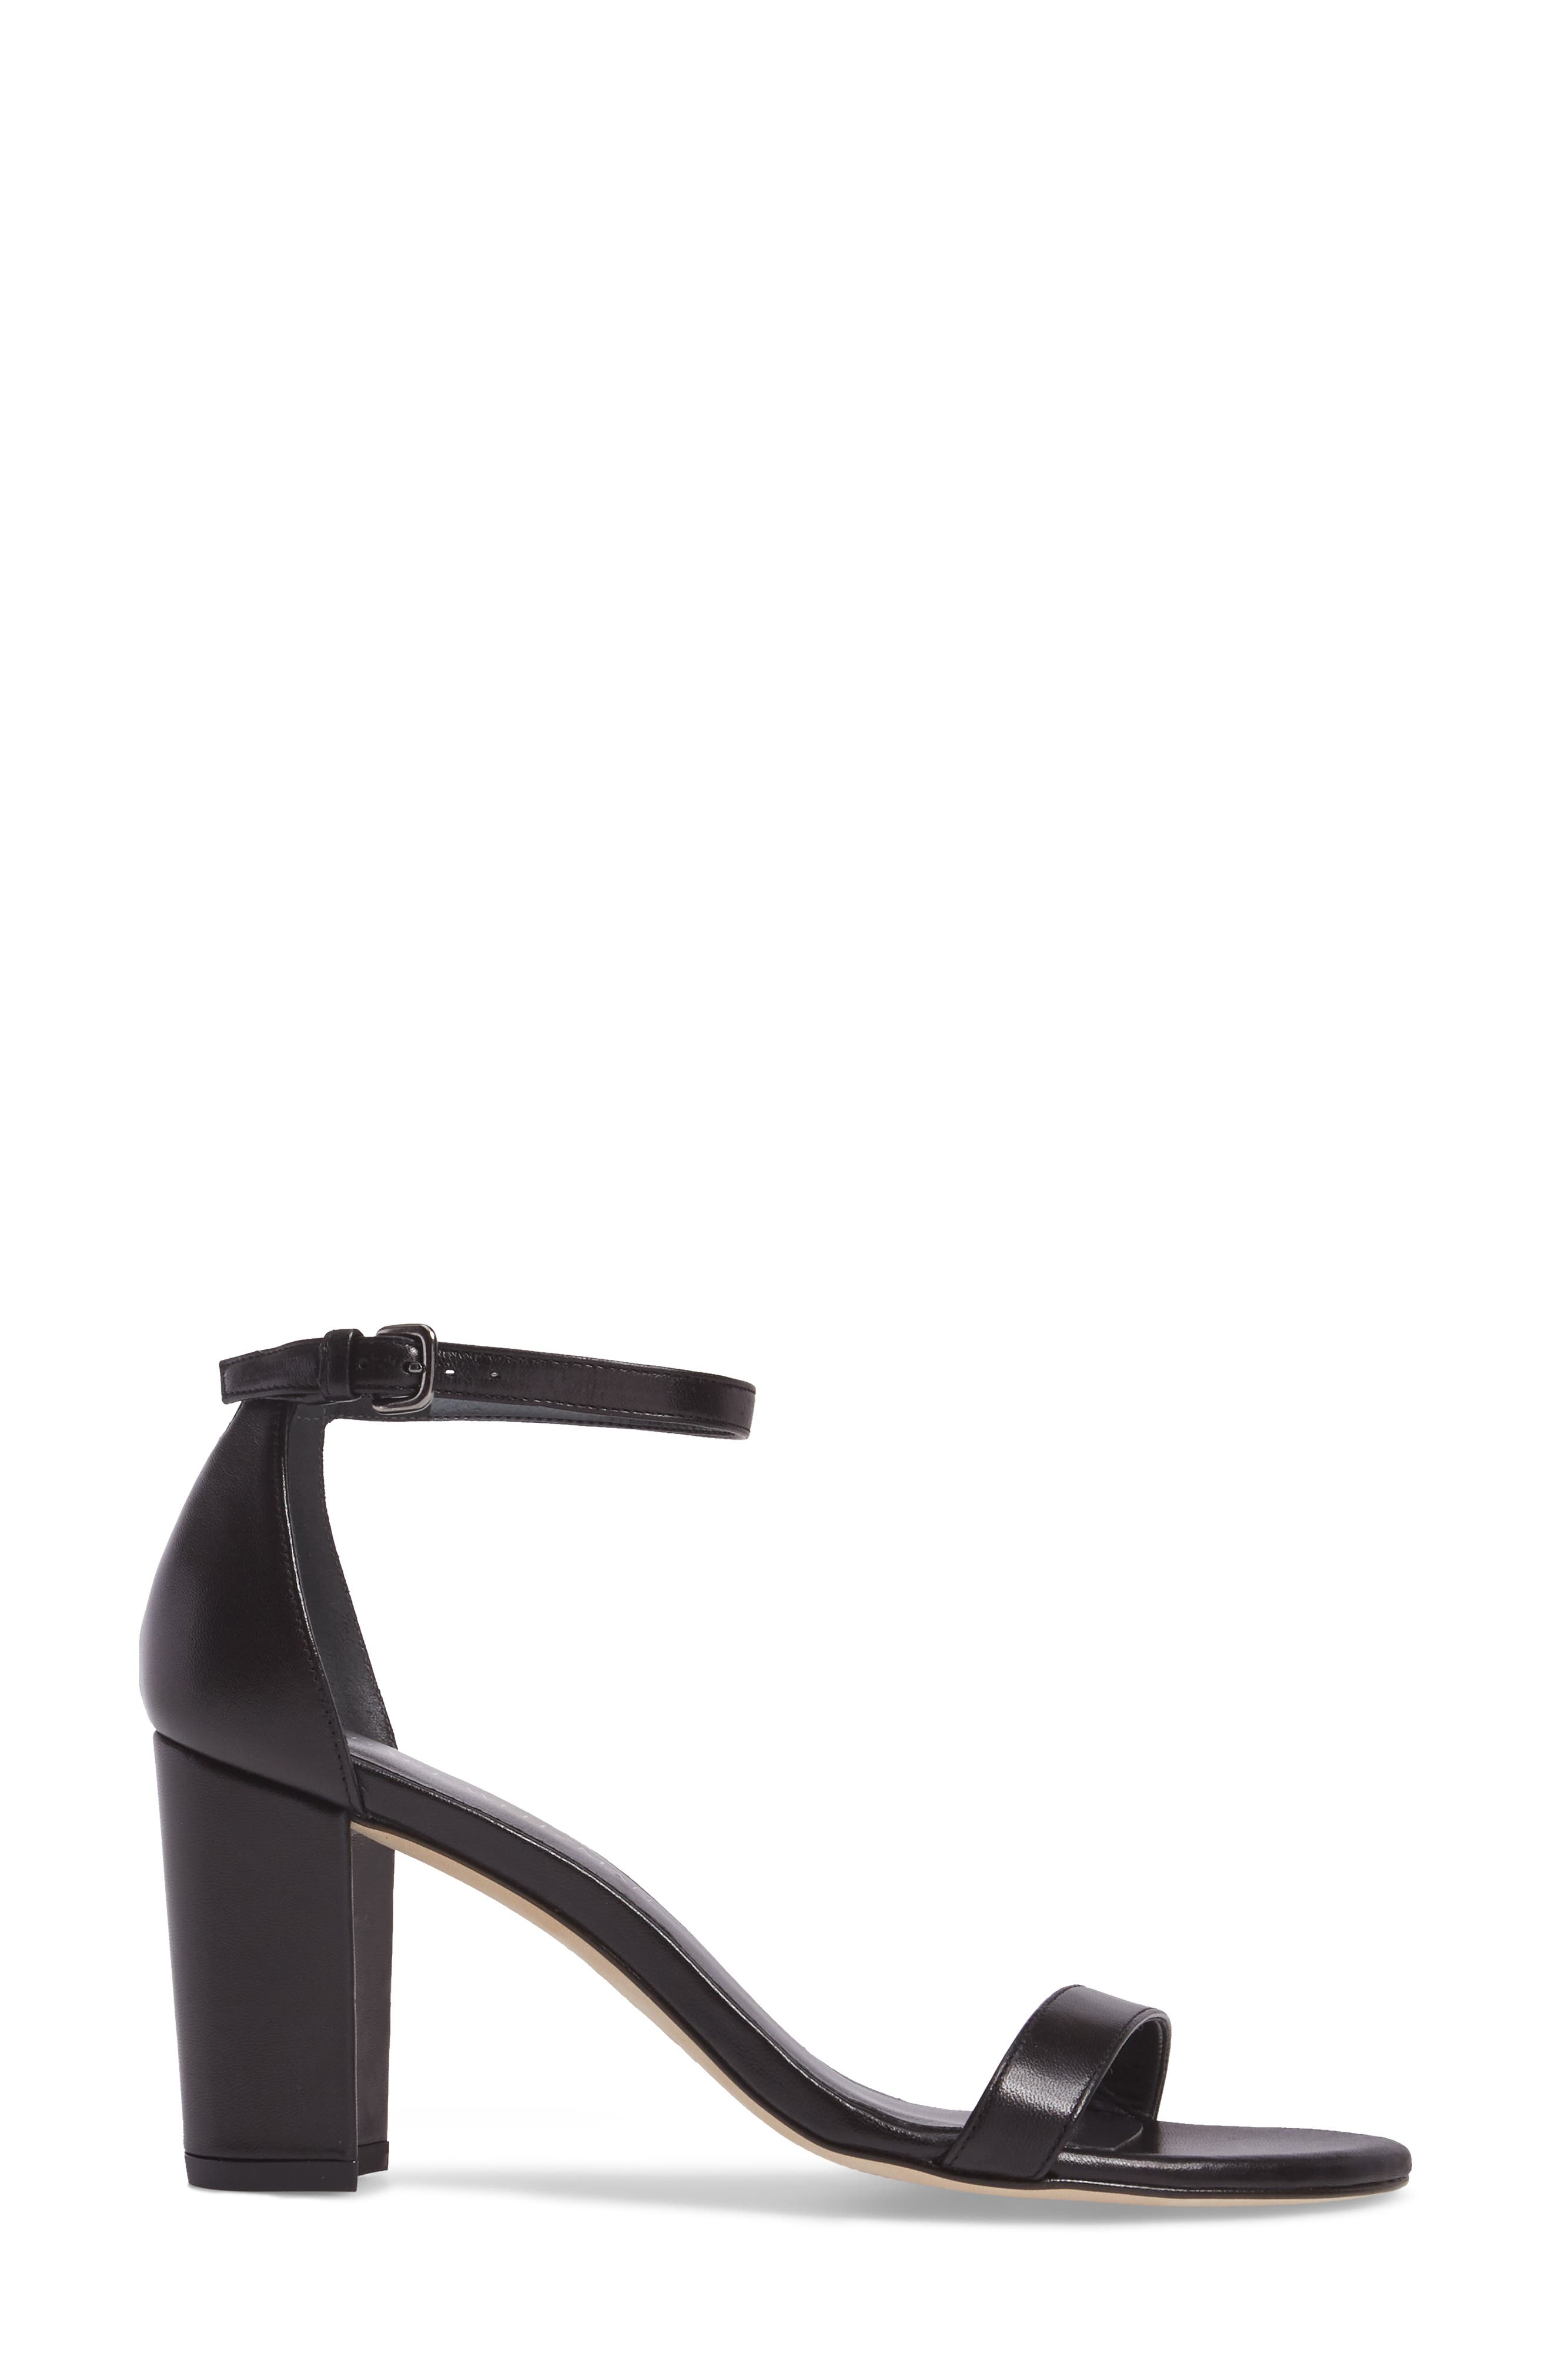 NearlyNude Ankle Strap Sandal,                             Alternate thumbnail 55, color,